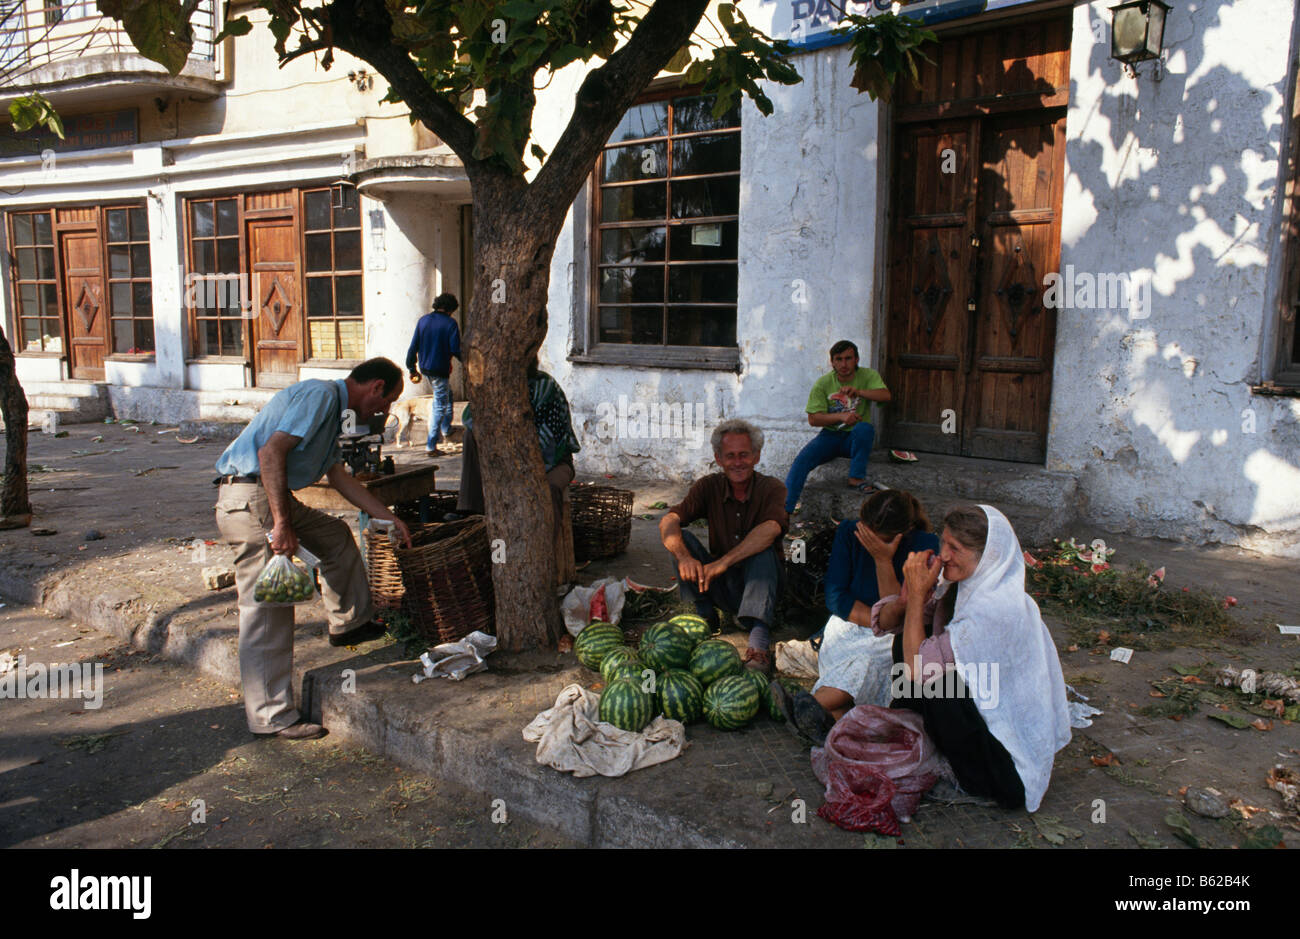 Street scene with people selling watermelons in Tirana, Albania 1994 - Stock Image